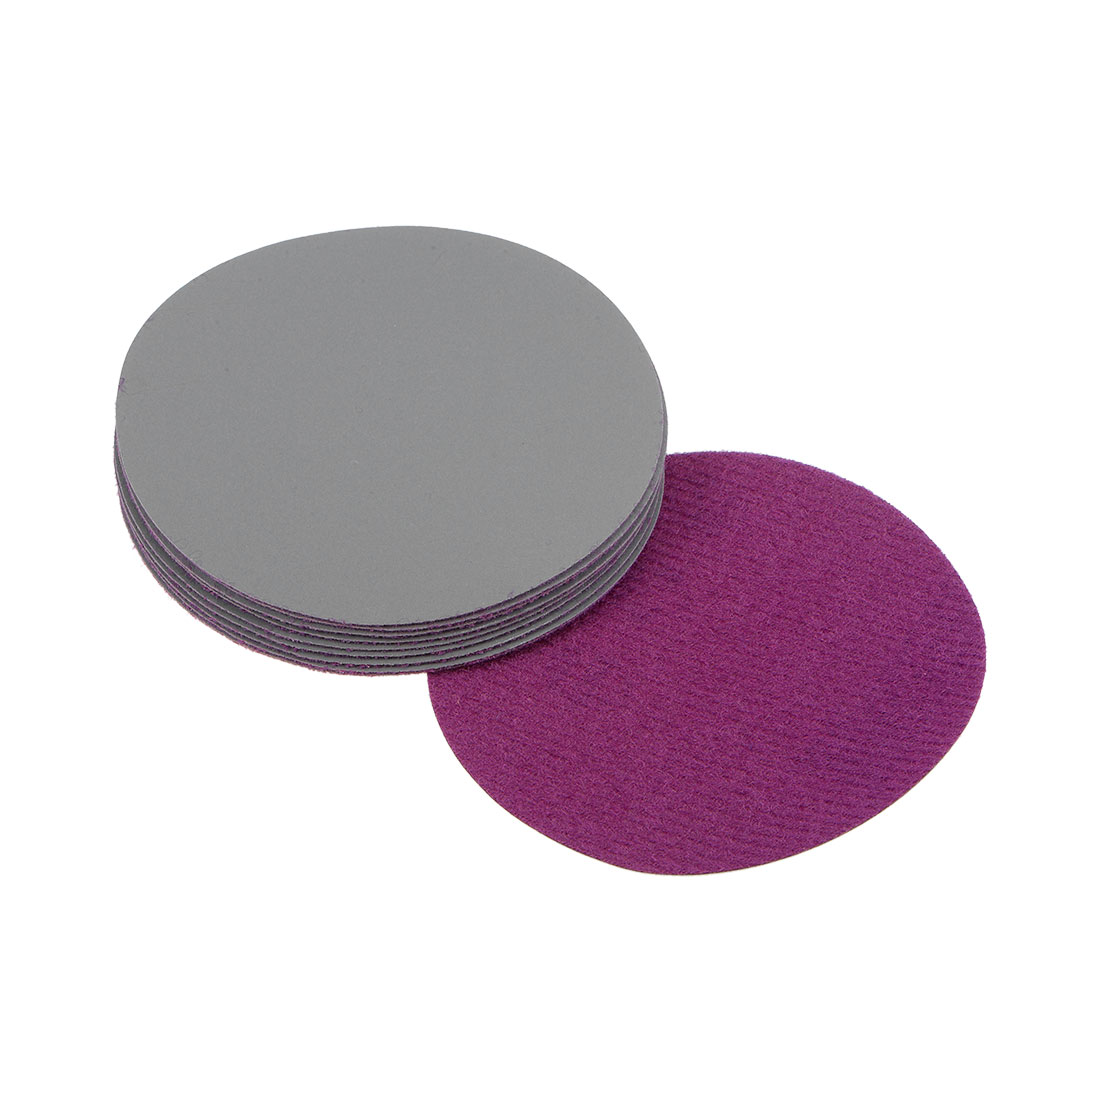 3 inch Wet Dry Discs 2000 Grit Hook and Loop Sanding Disc Silicon Carbide 10pcs